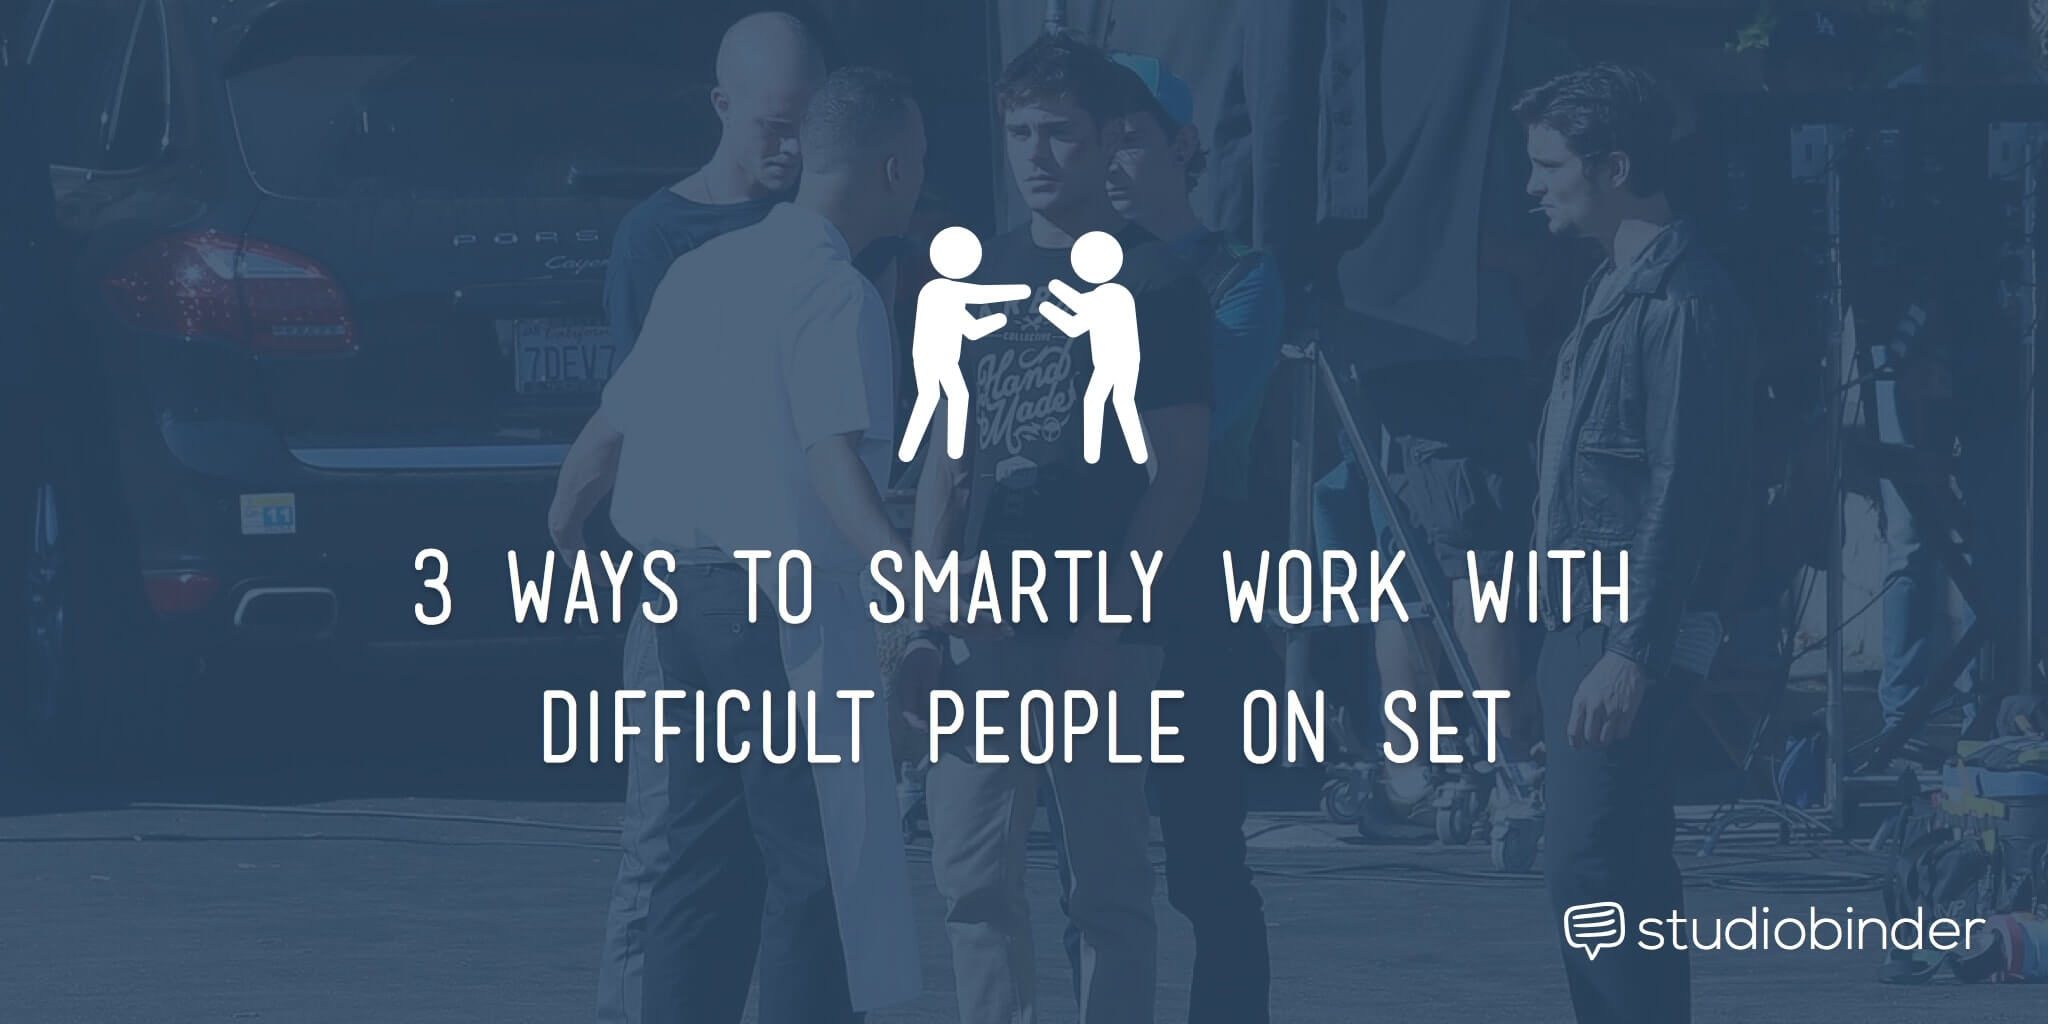 3-ways-to-smartly-work-with-difficult-people-on-set